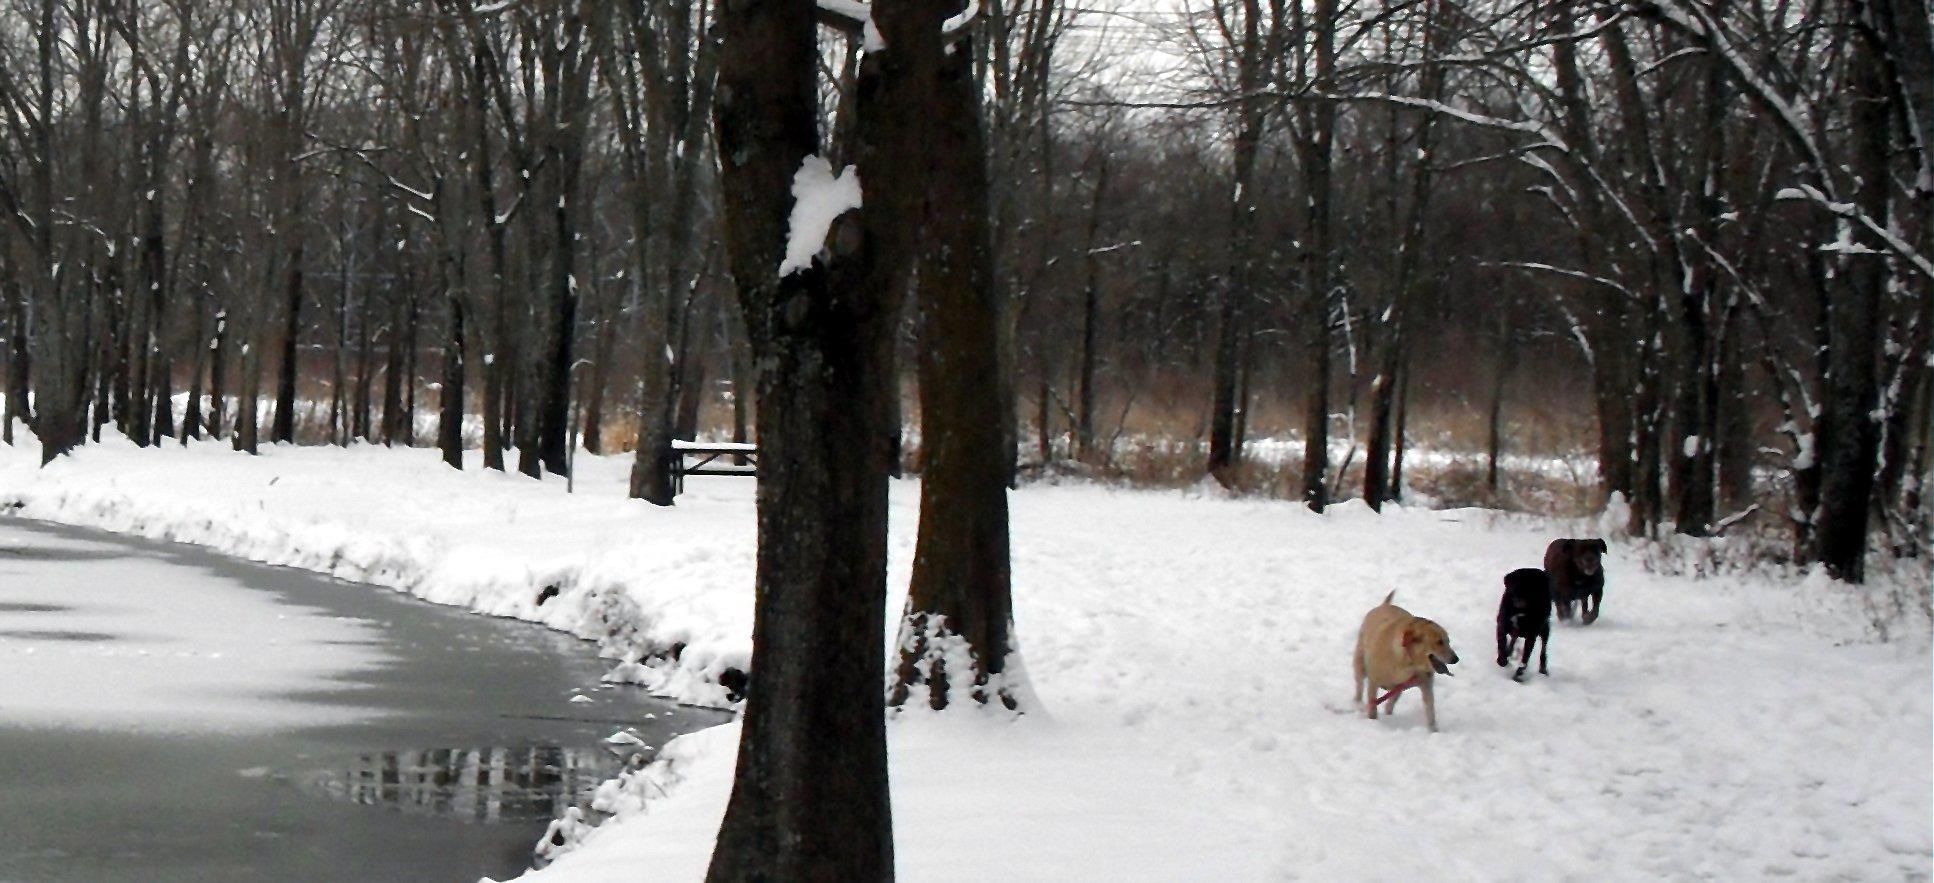 A snowy day in Ablon park with the labs by Terri Gail Birdwell Jones